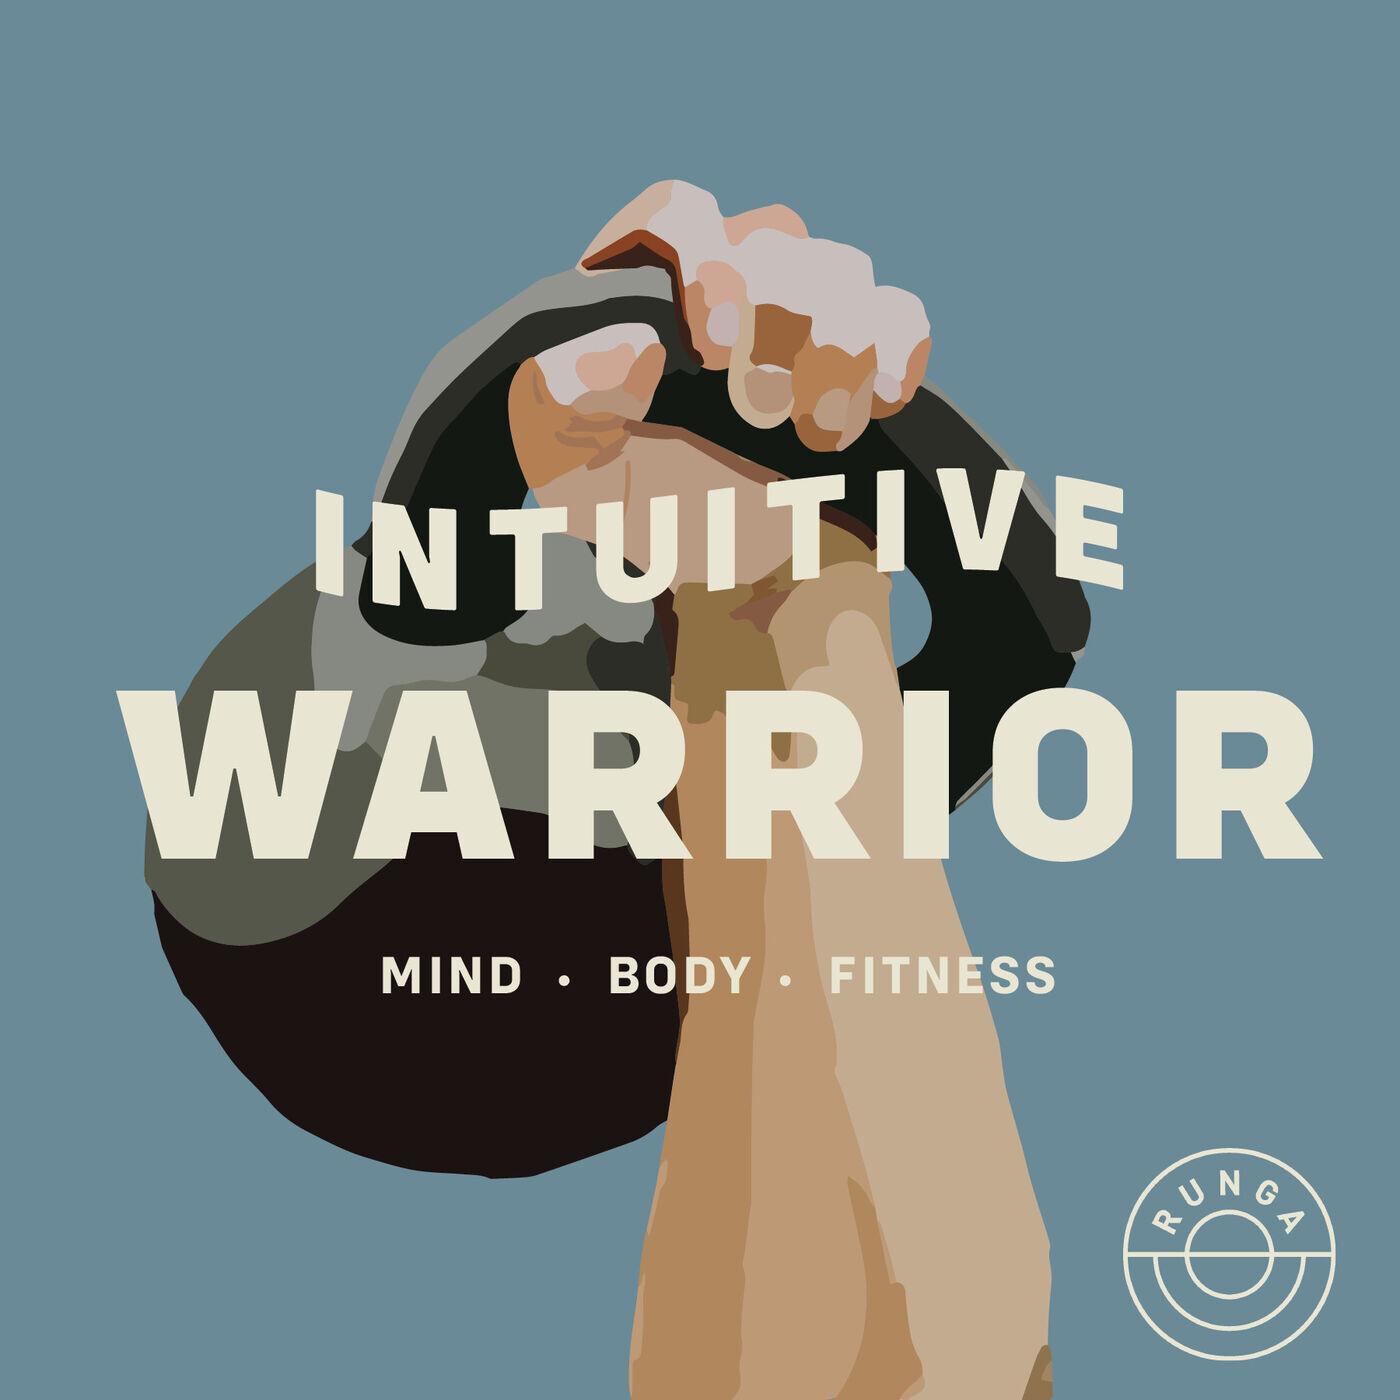 069   Jared Pickard - How To Start a Biodynamic Farm, Problems with Organic, & How to Make Edible Beauty Products